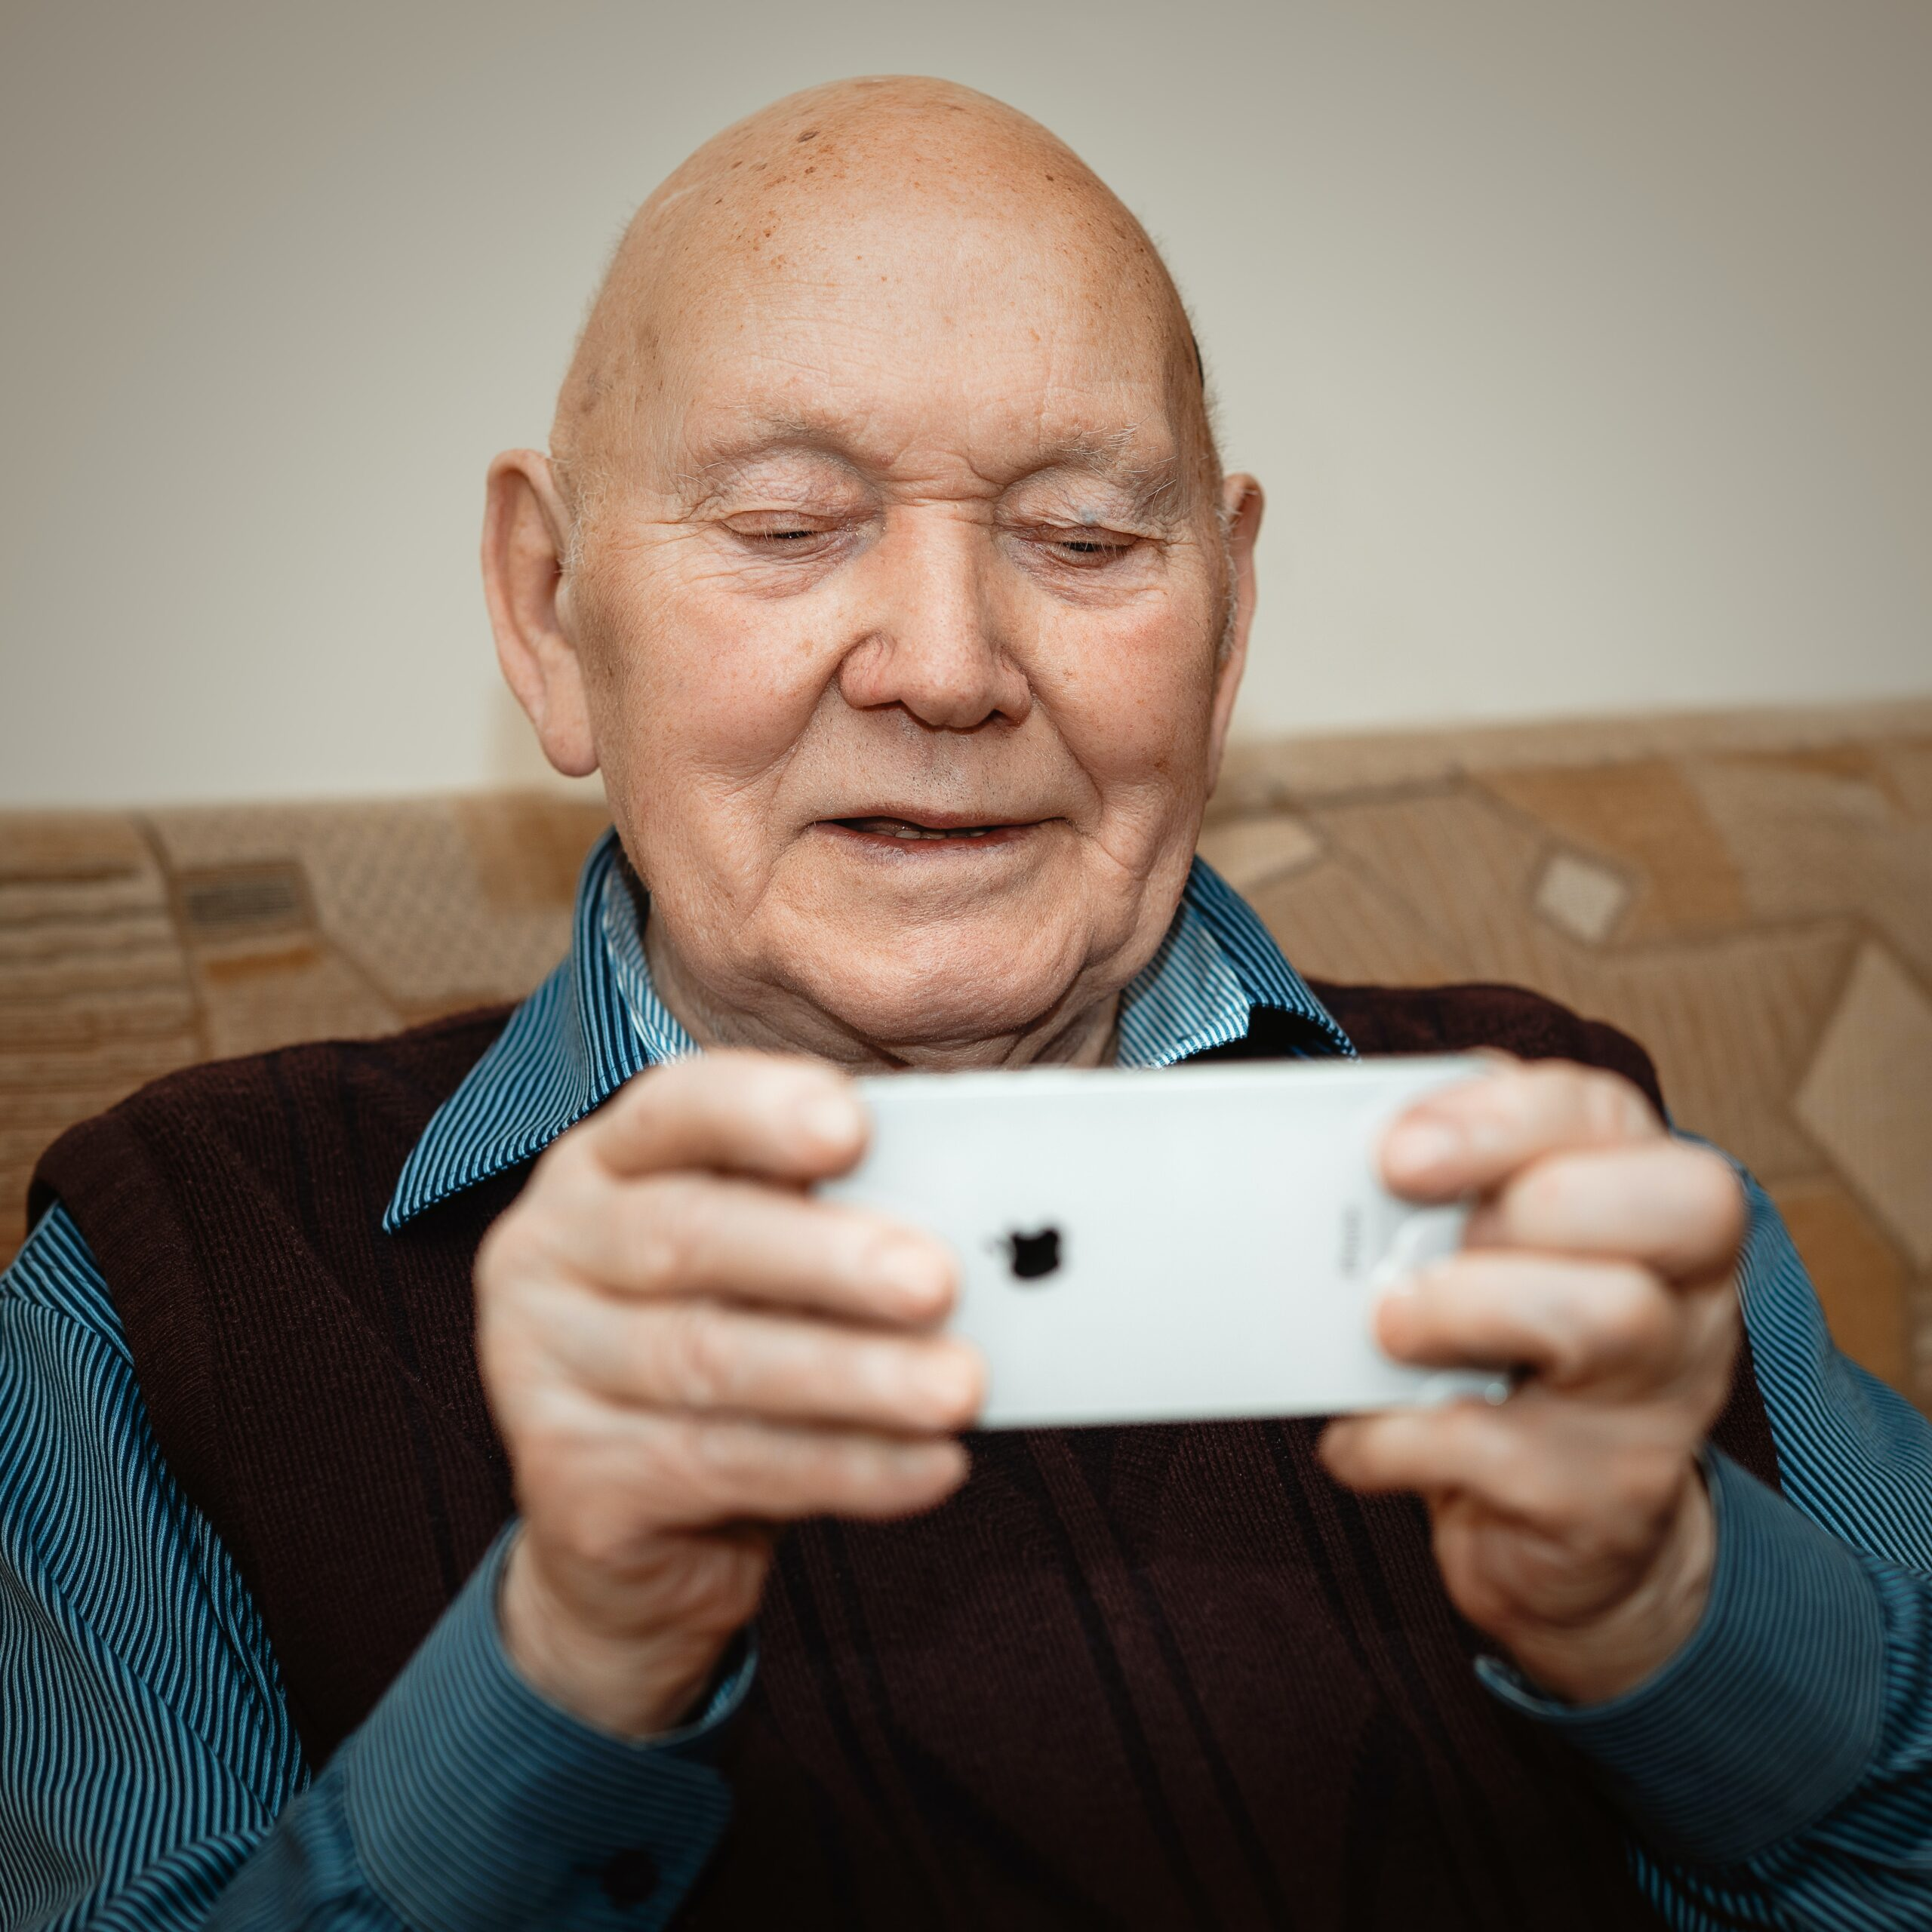 senior avec un iphone